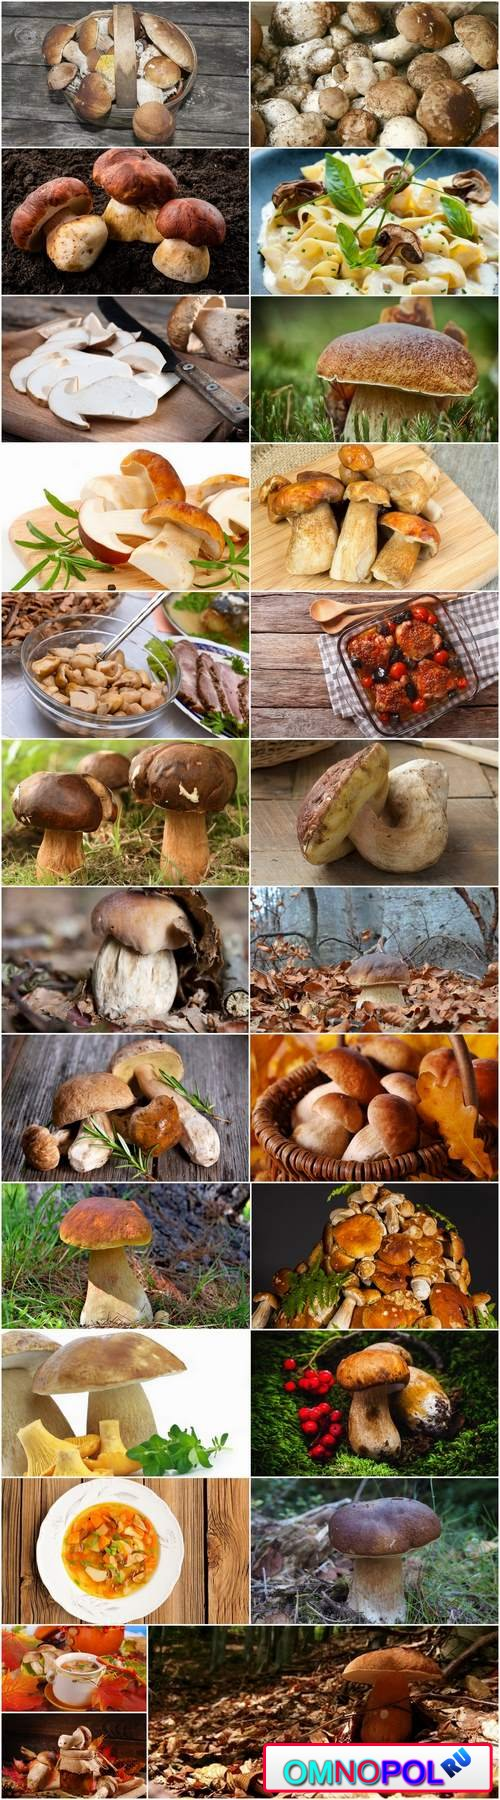 White fungus harvest mushroom picking a still life 25 HQ Jpeg